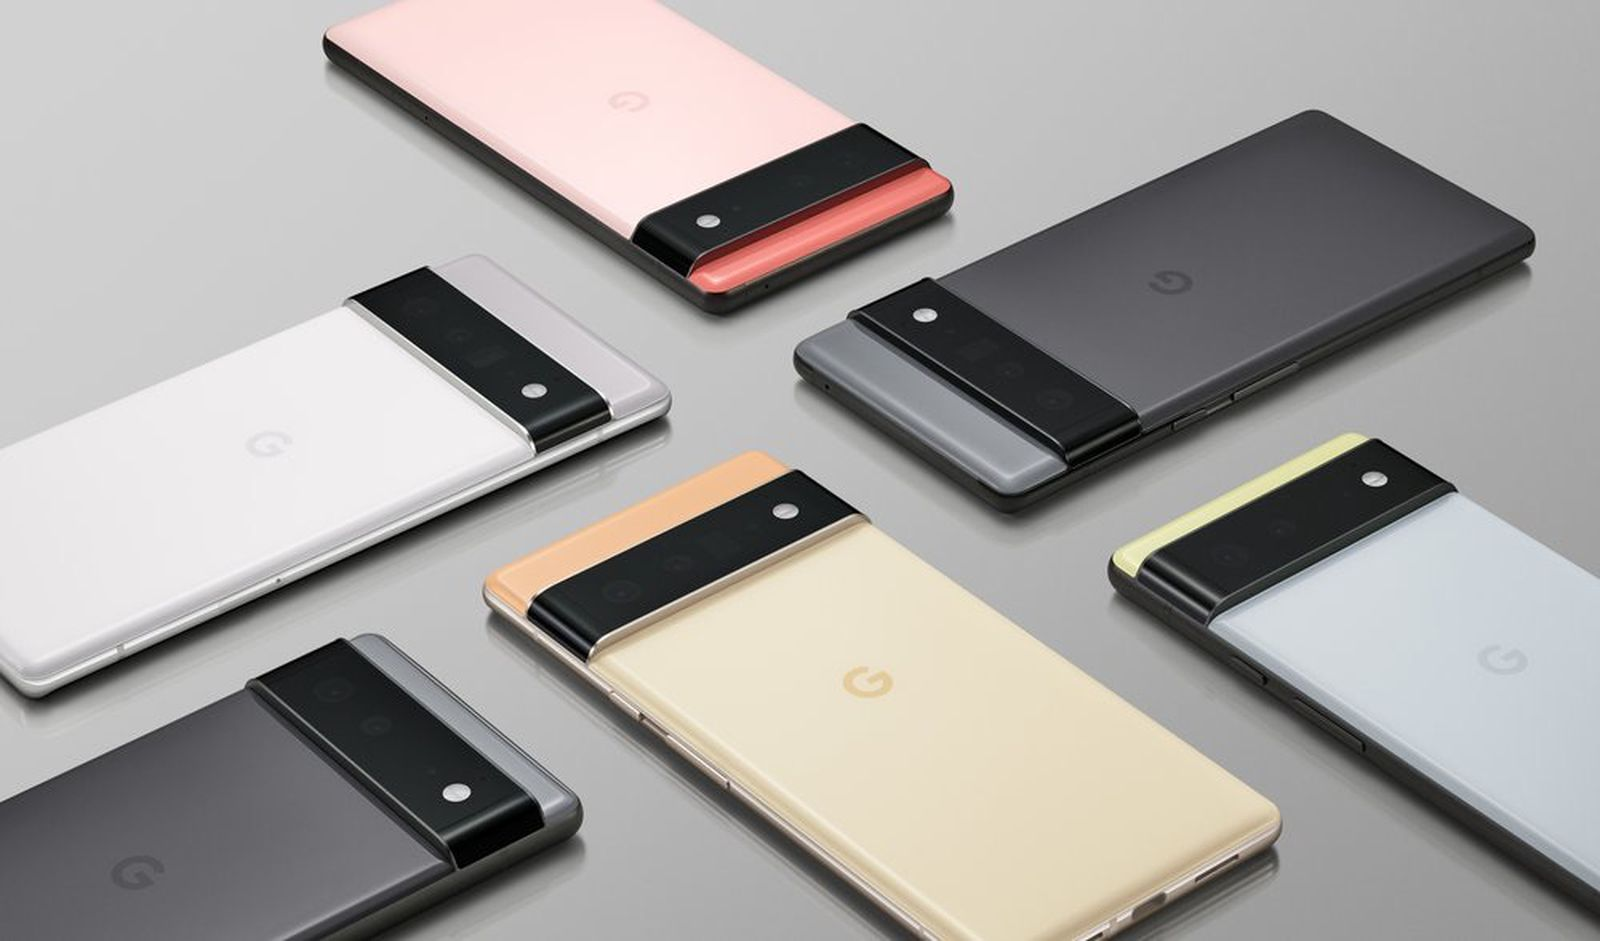 Google Launches New Flagship Pixel 6 and Pixel 6 Pro Smartphones Priced at $599 and $899